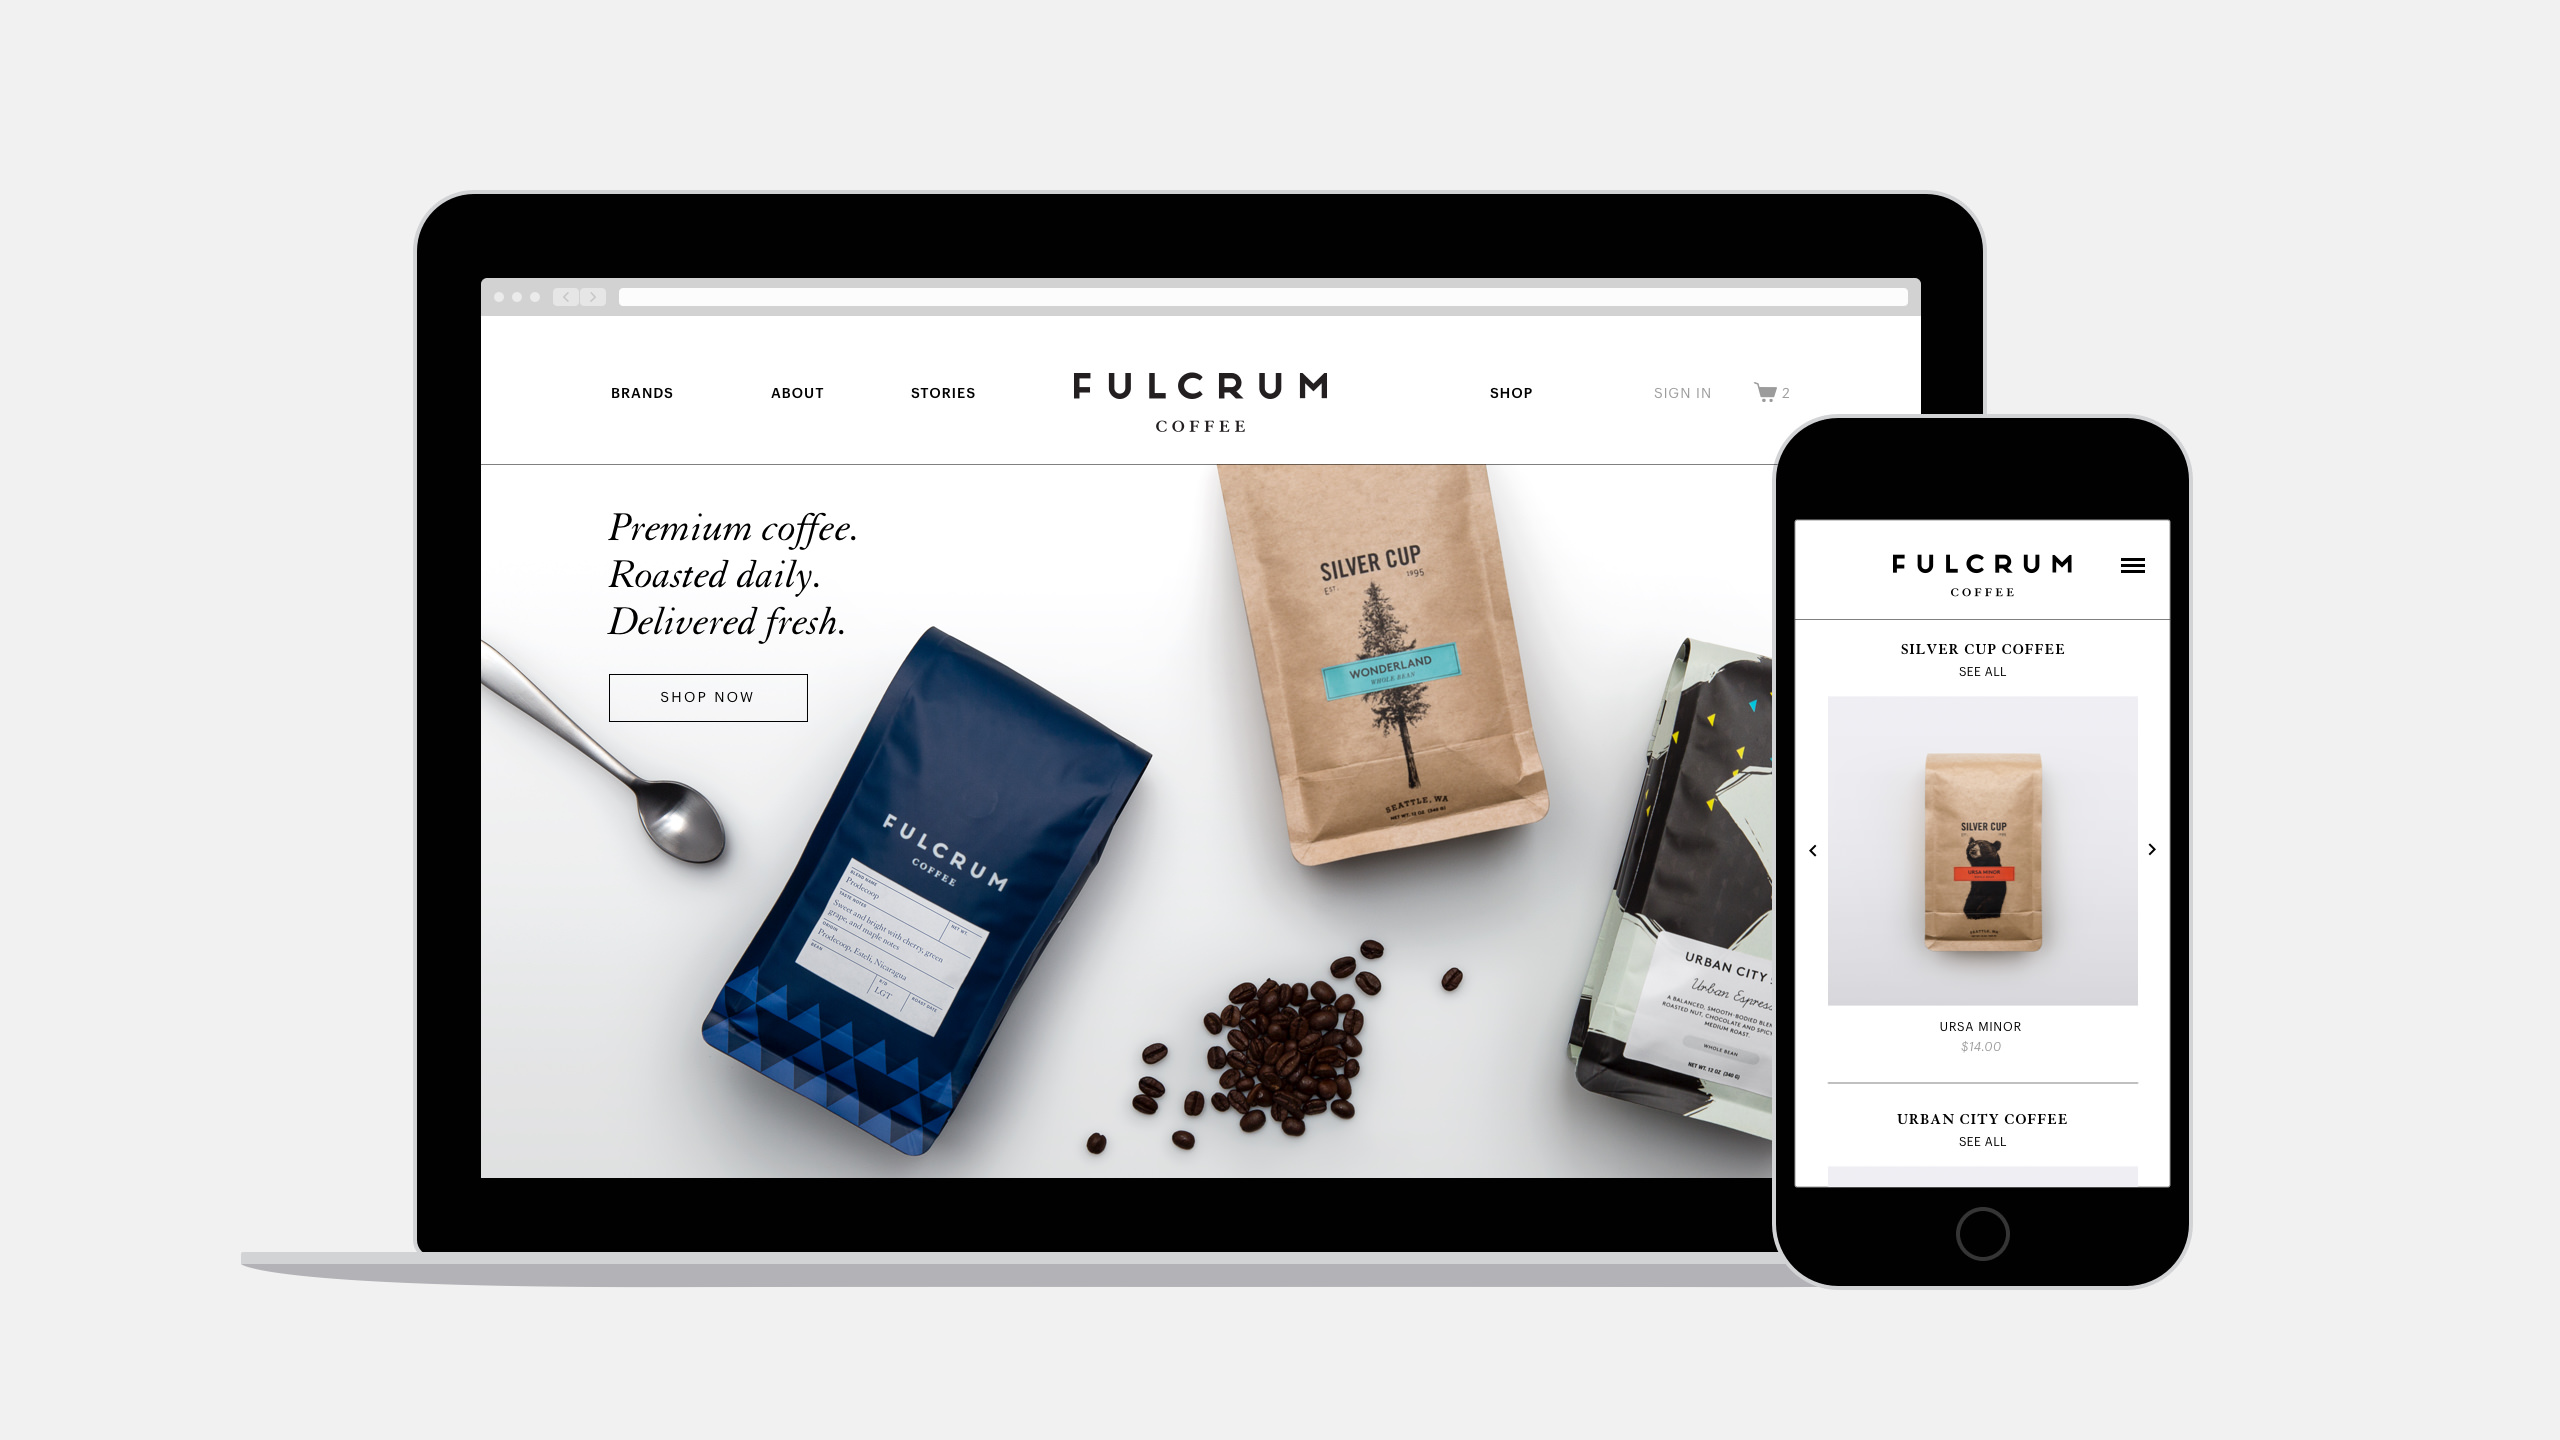 tolleson-case-study-fulcrum-coffee-package-19-v2